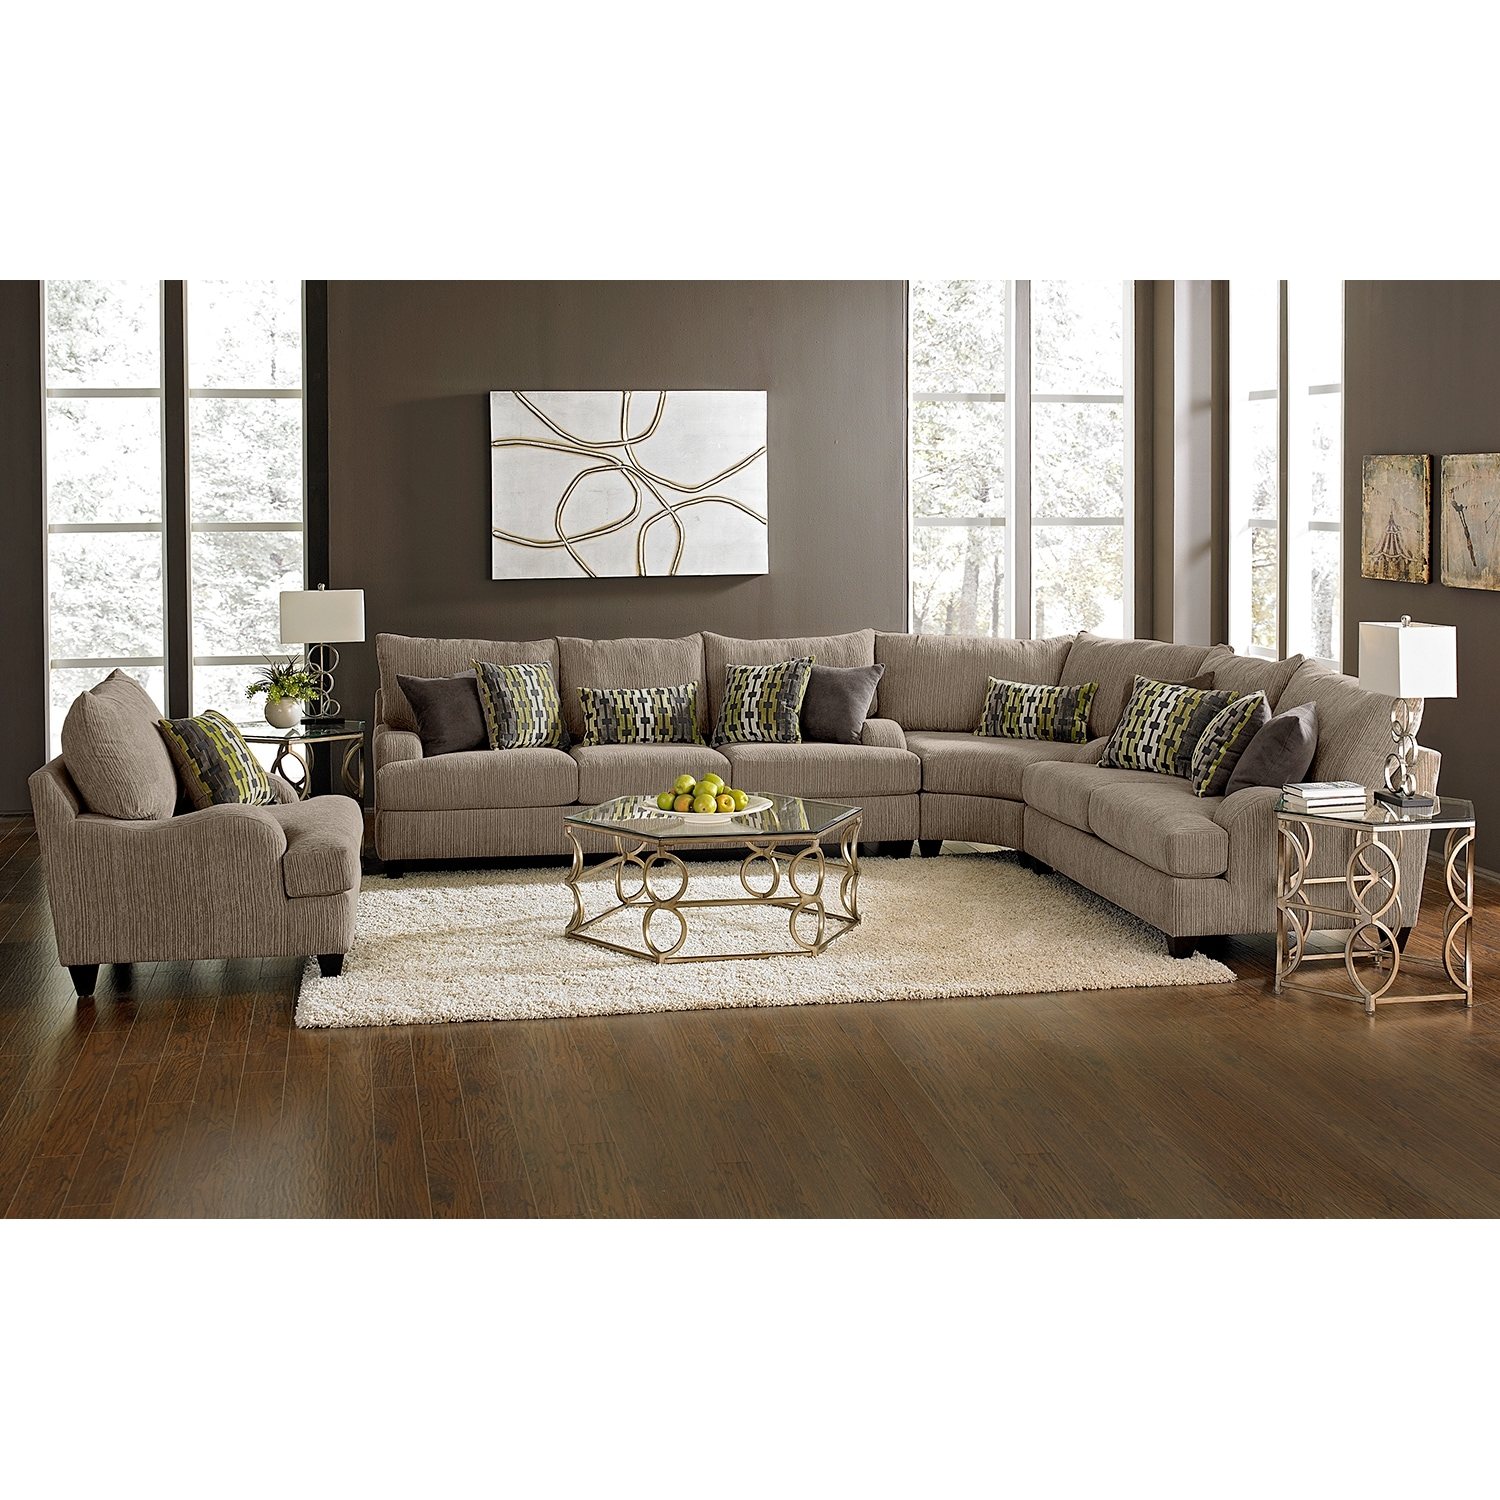 Hollister ii 3 piece sectional for Living room furniture pieces